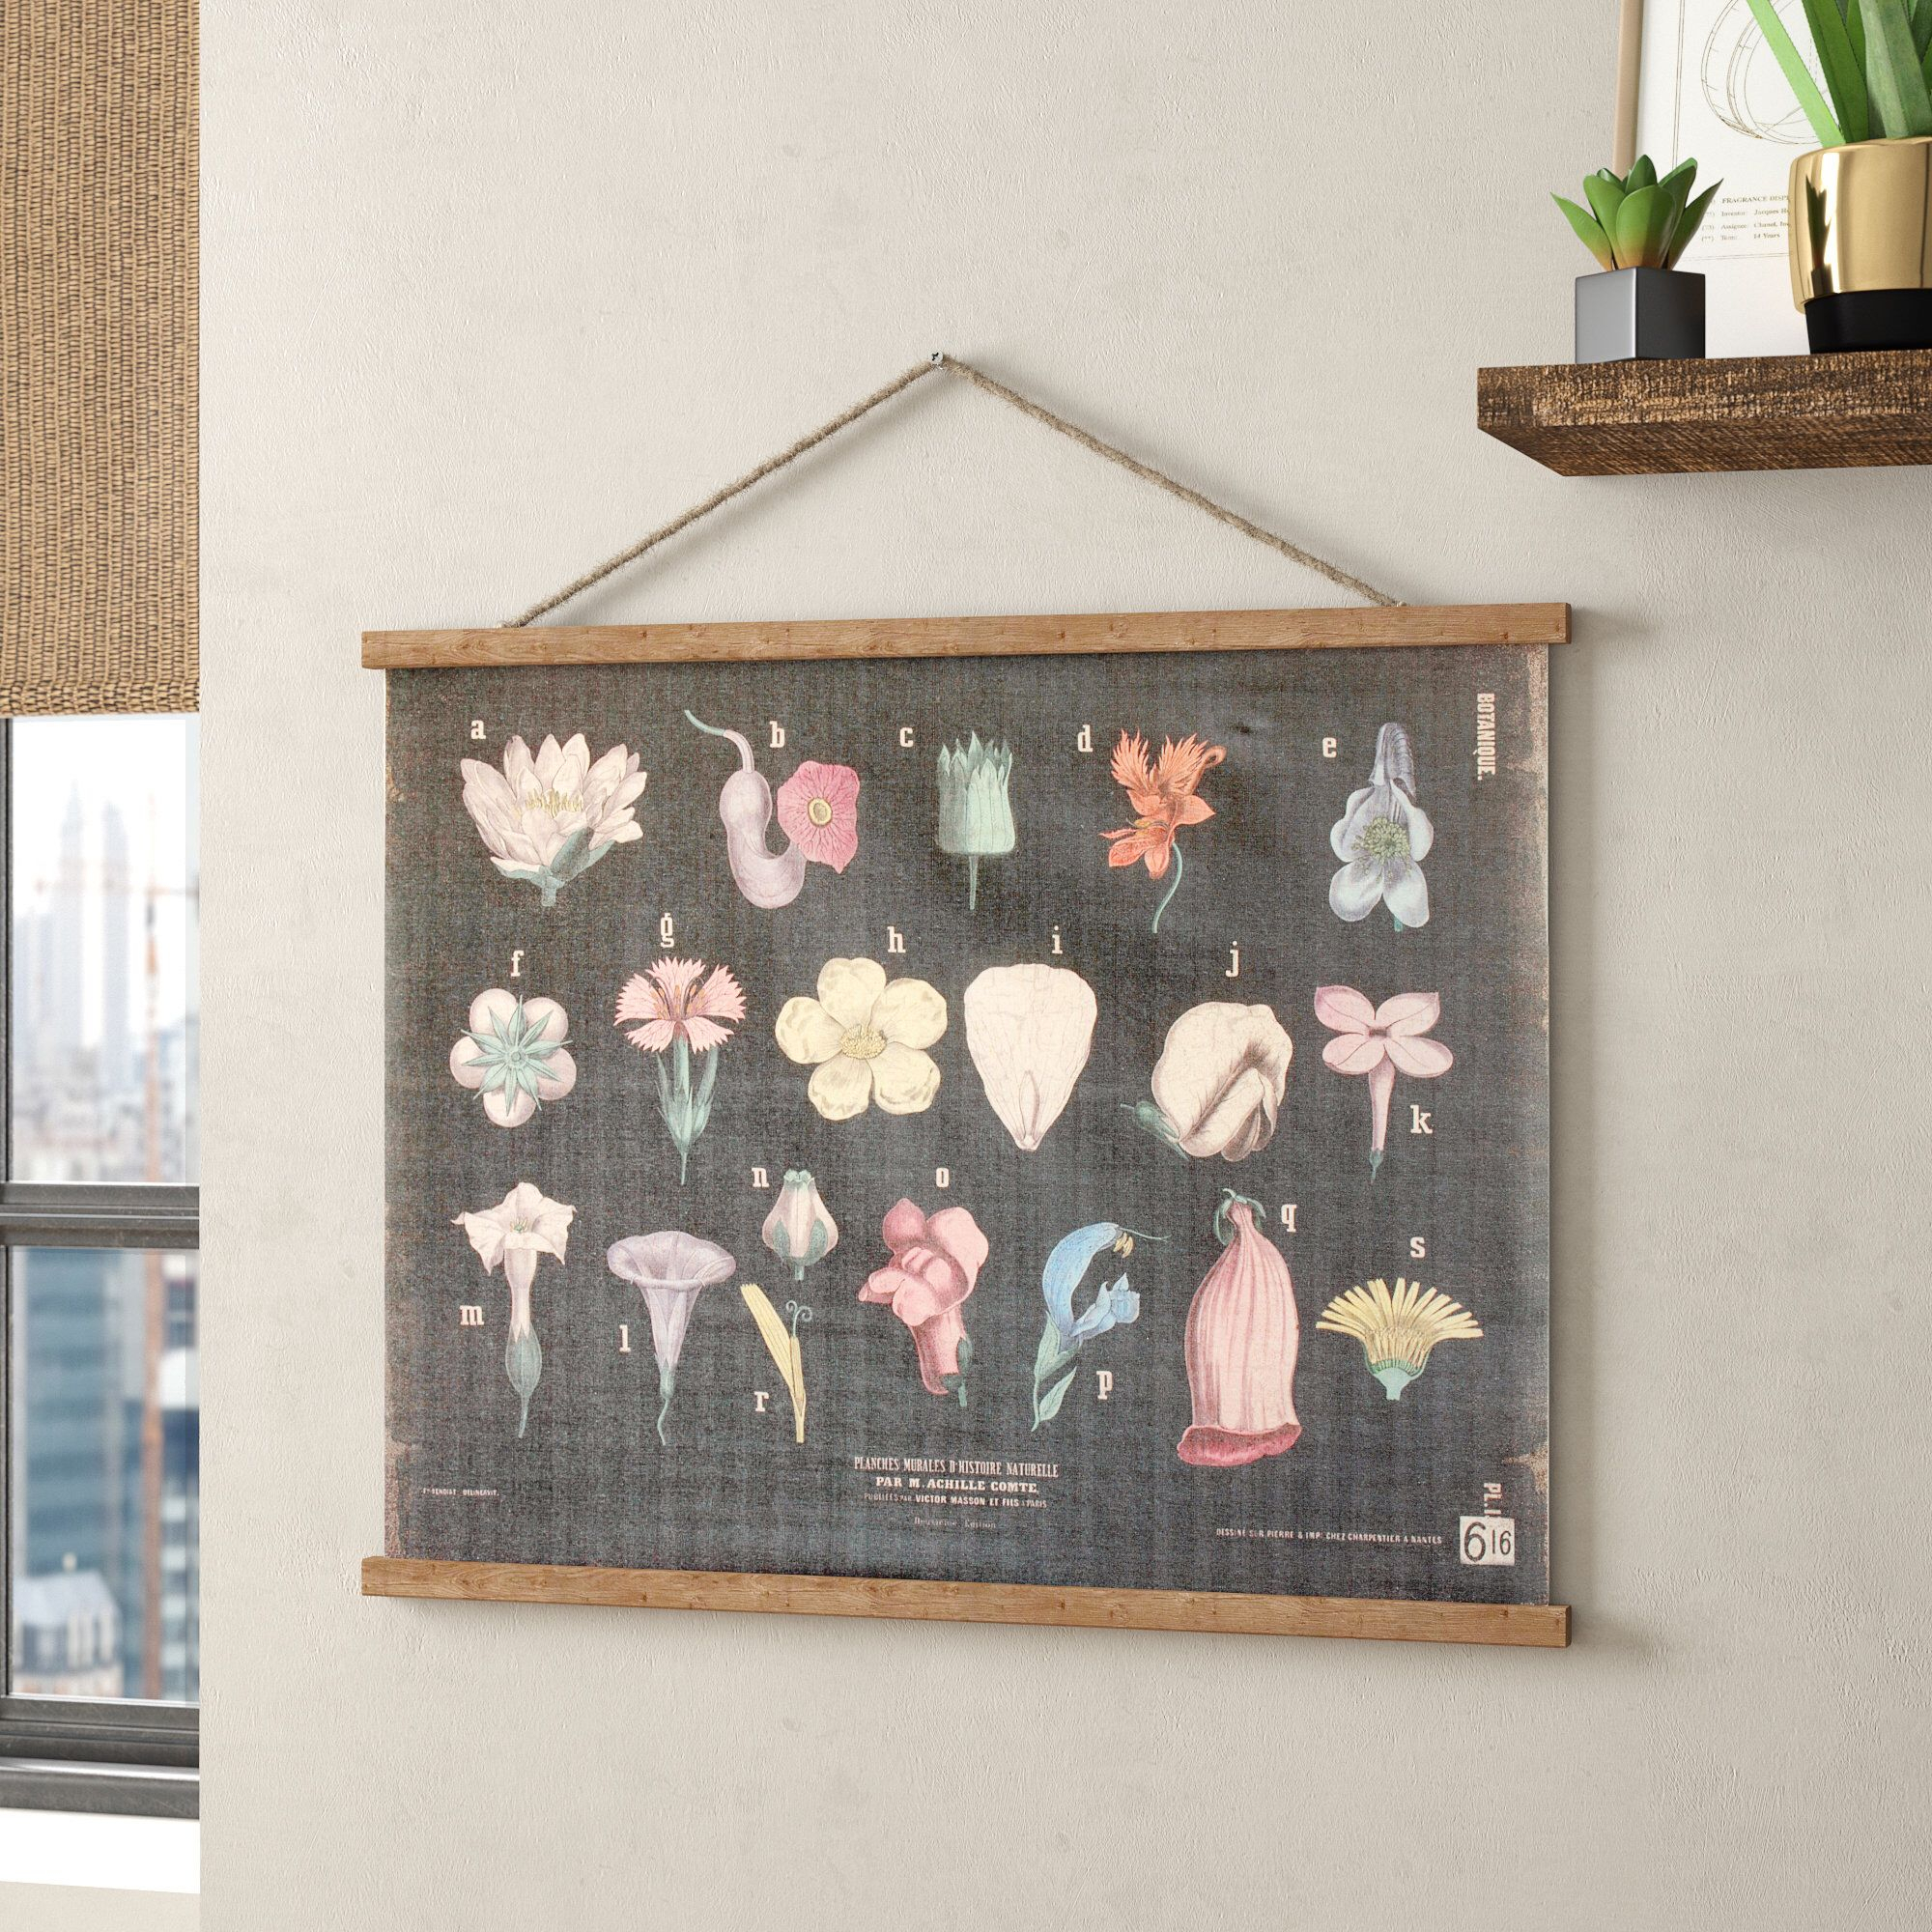 Blended Fabric Hohl Wall Hanging With Rod | Wall Hanging For Most Up To Date Blended Fabric Wall Hangings (View 9 of 20)